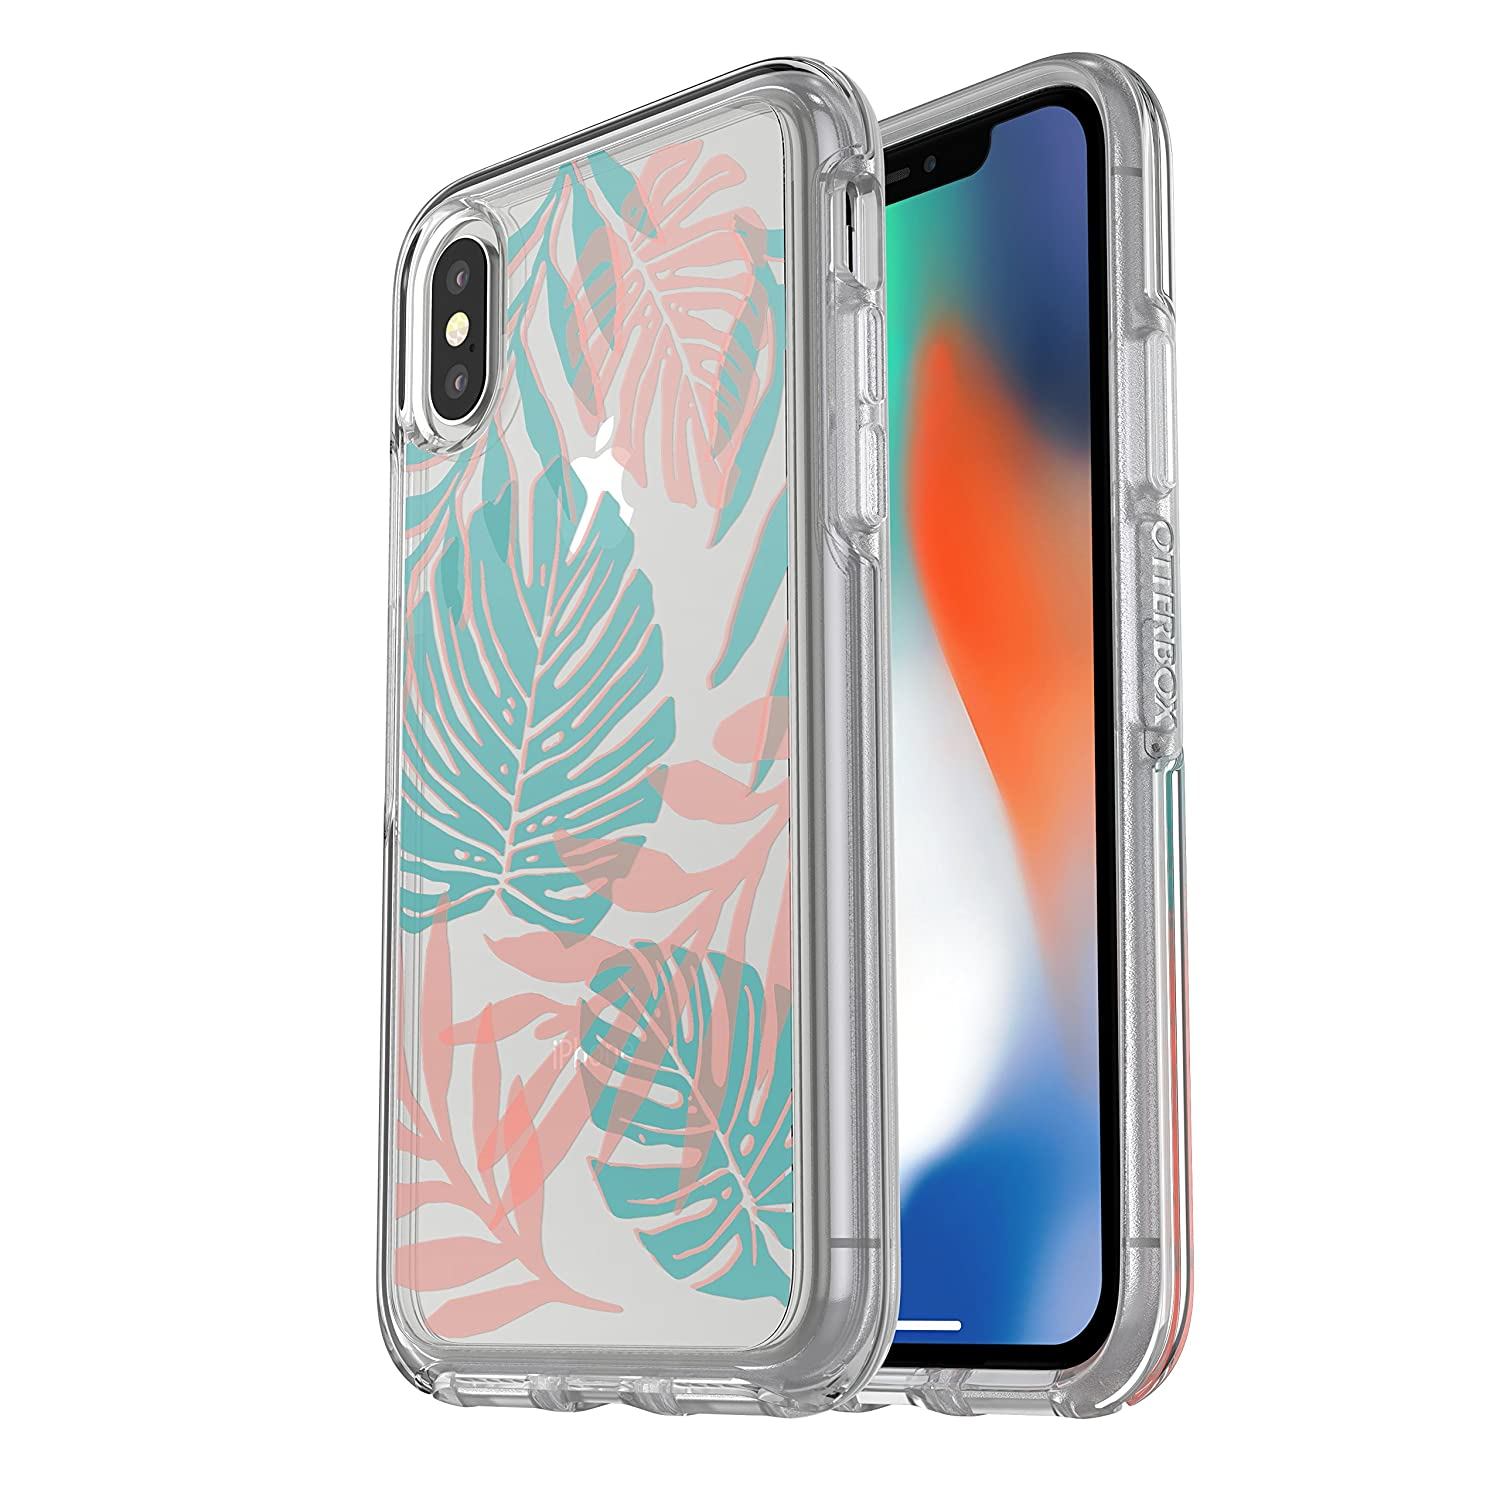 f8caf956e5 Amazon.com: OtterBox SYMMETRY CLEAR SERIES Case for iPhone Xs & iPhone X -  Retail Packaging - EASY BREEZY (CLEAR/EASY BREEZY): Cell Phones &  Accessories